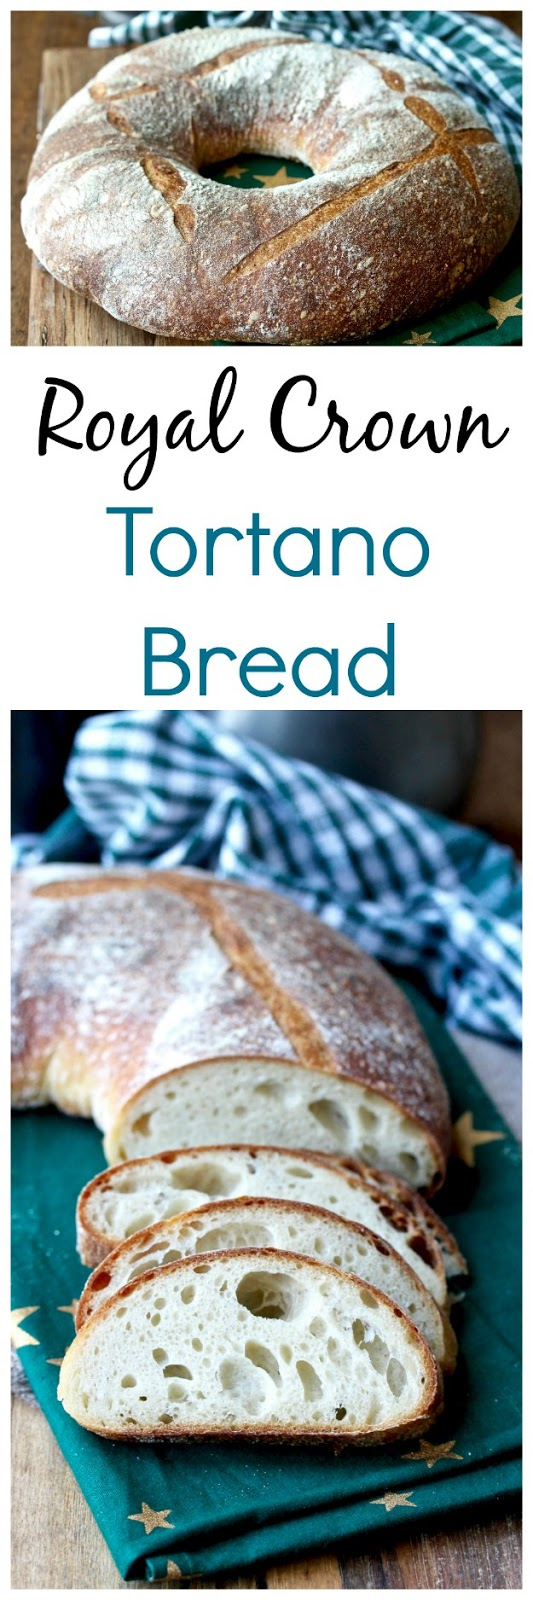 Royal Crown Tortano Bread